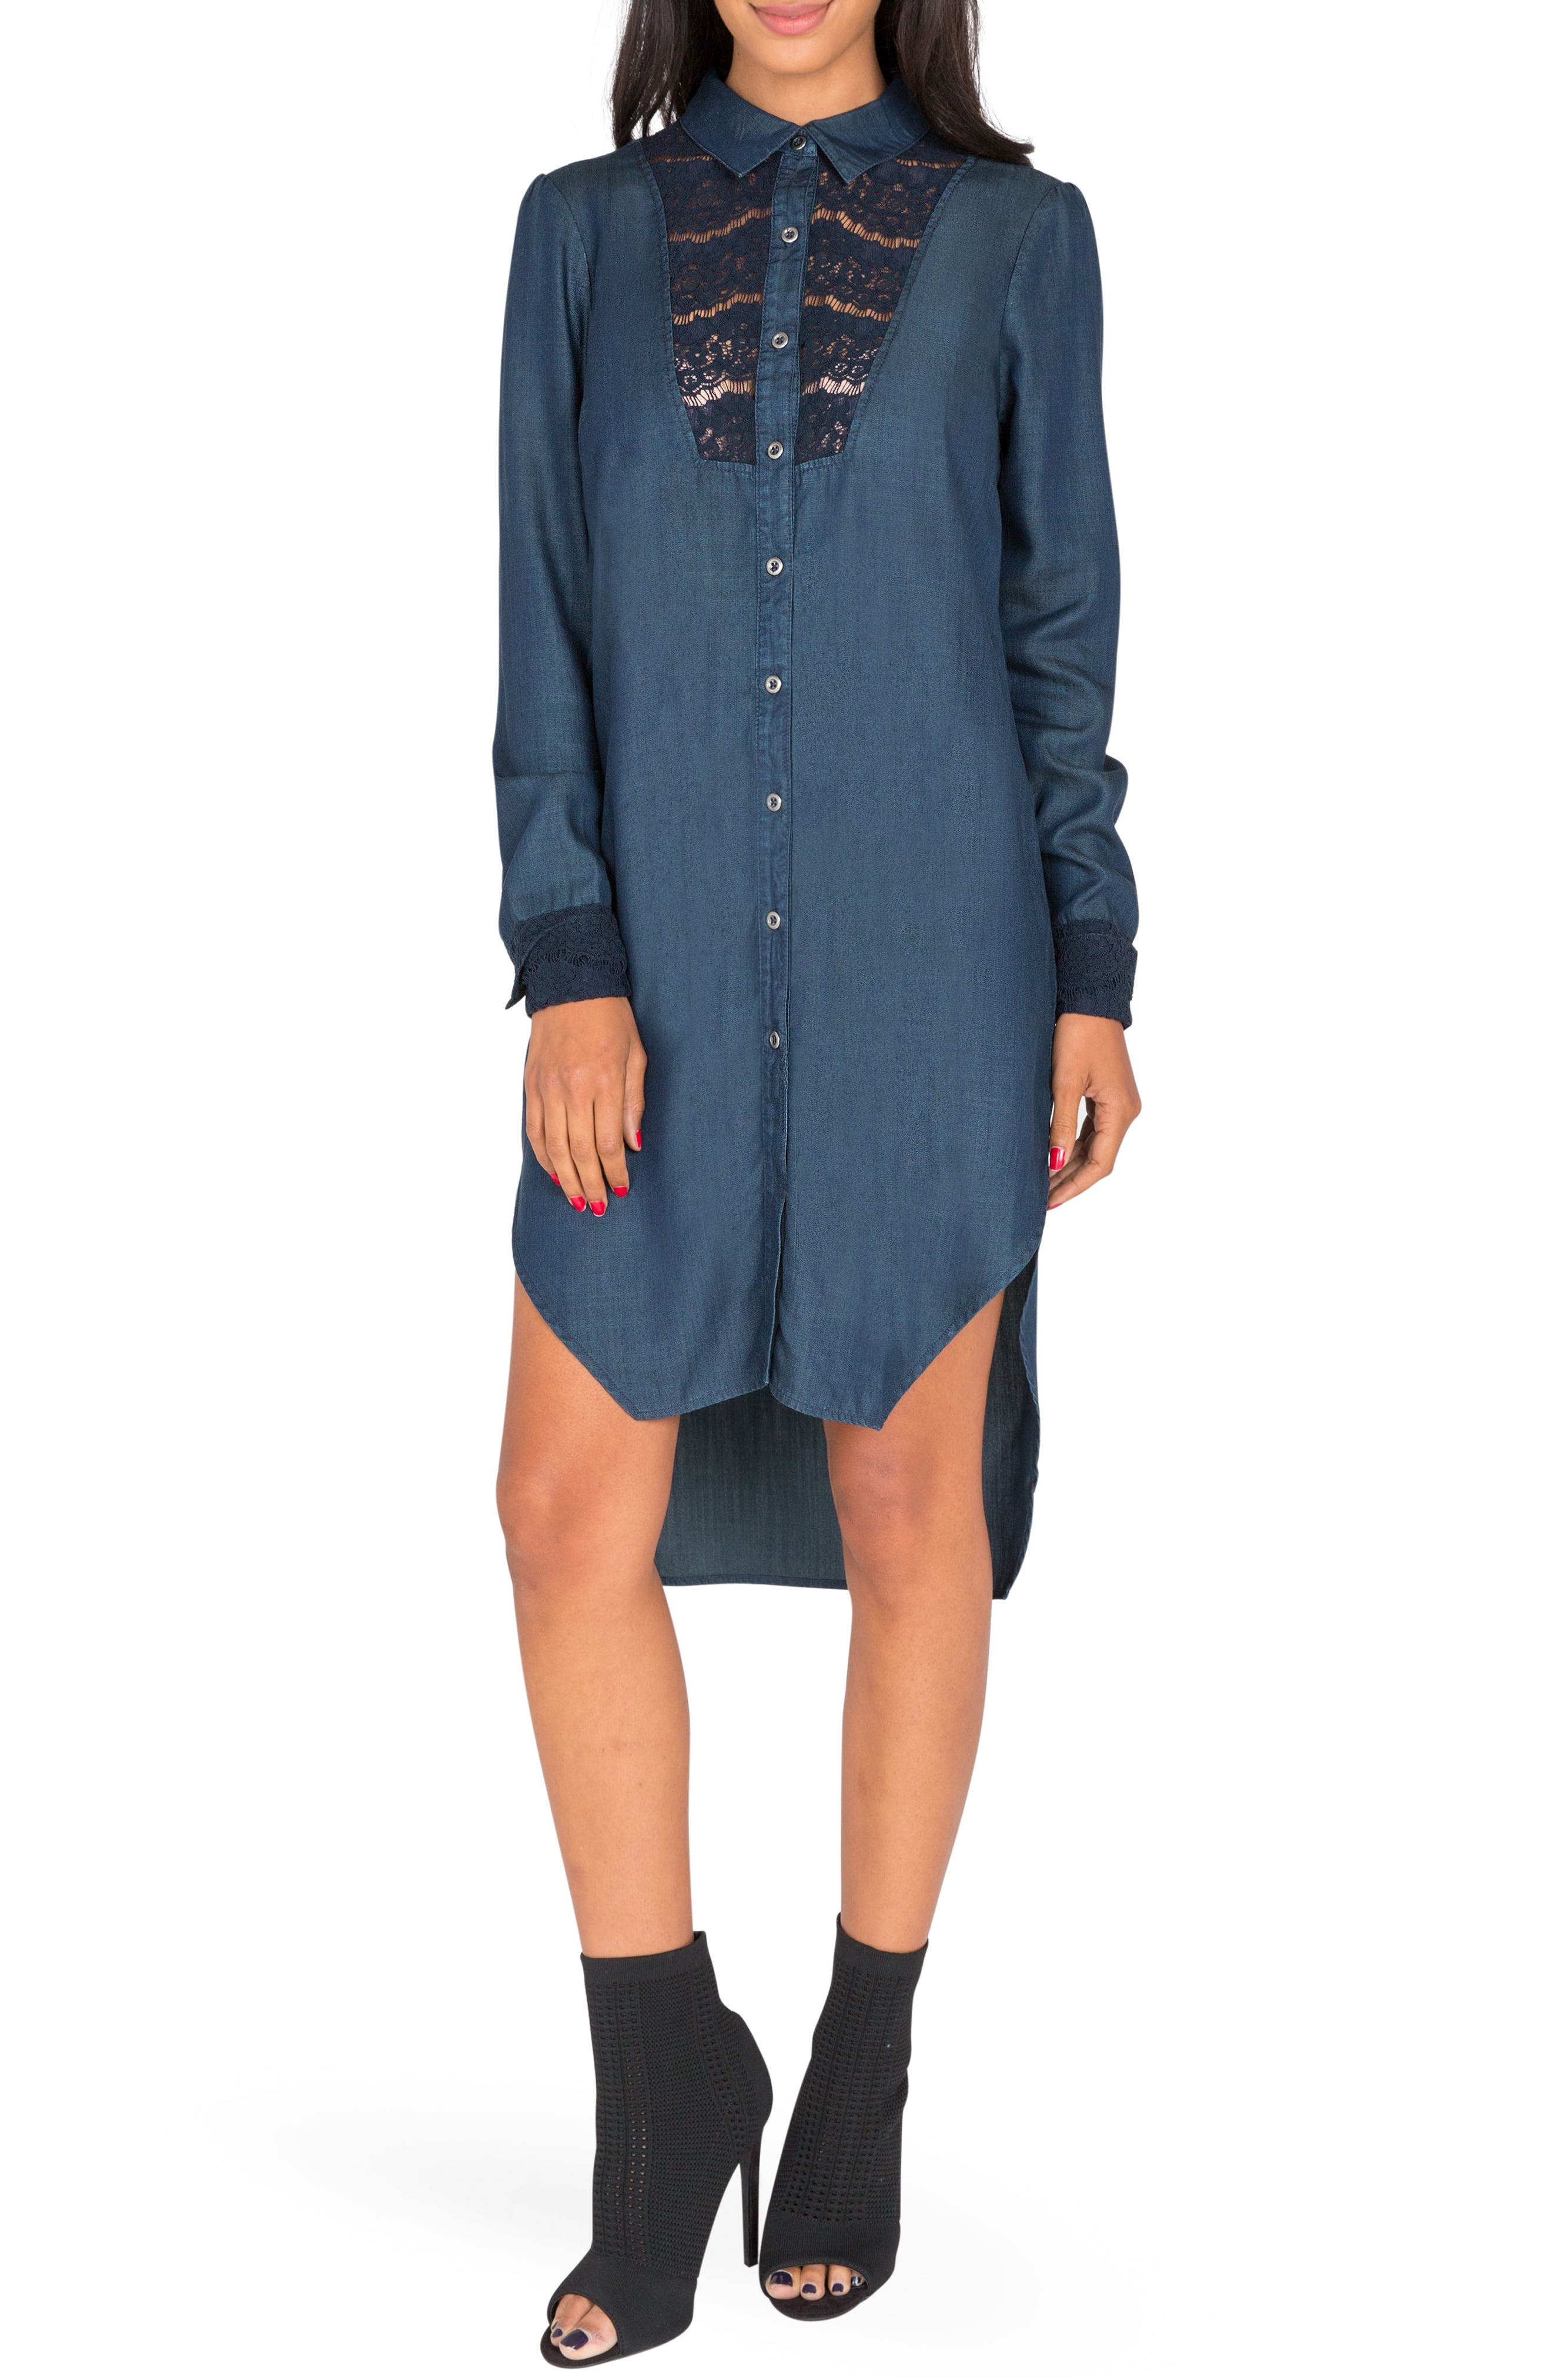 Standards & Practices Felicity Lace Trim Chambray Shirtdress